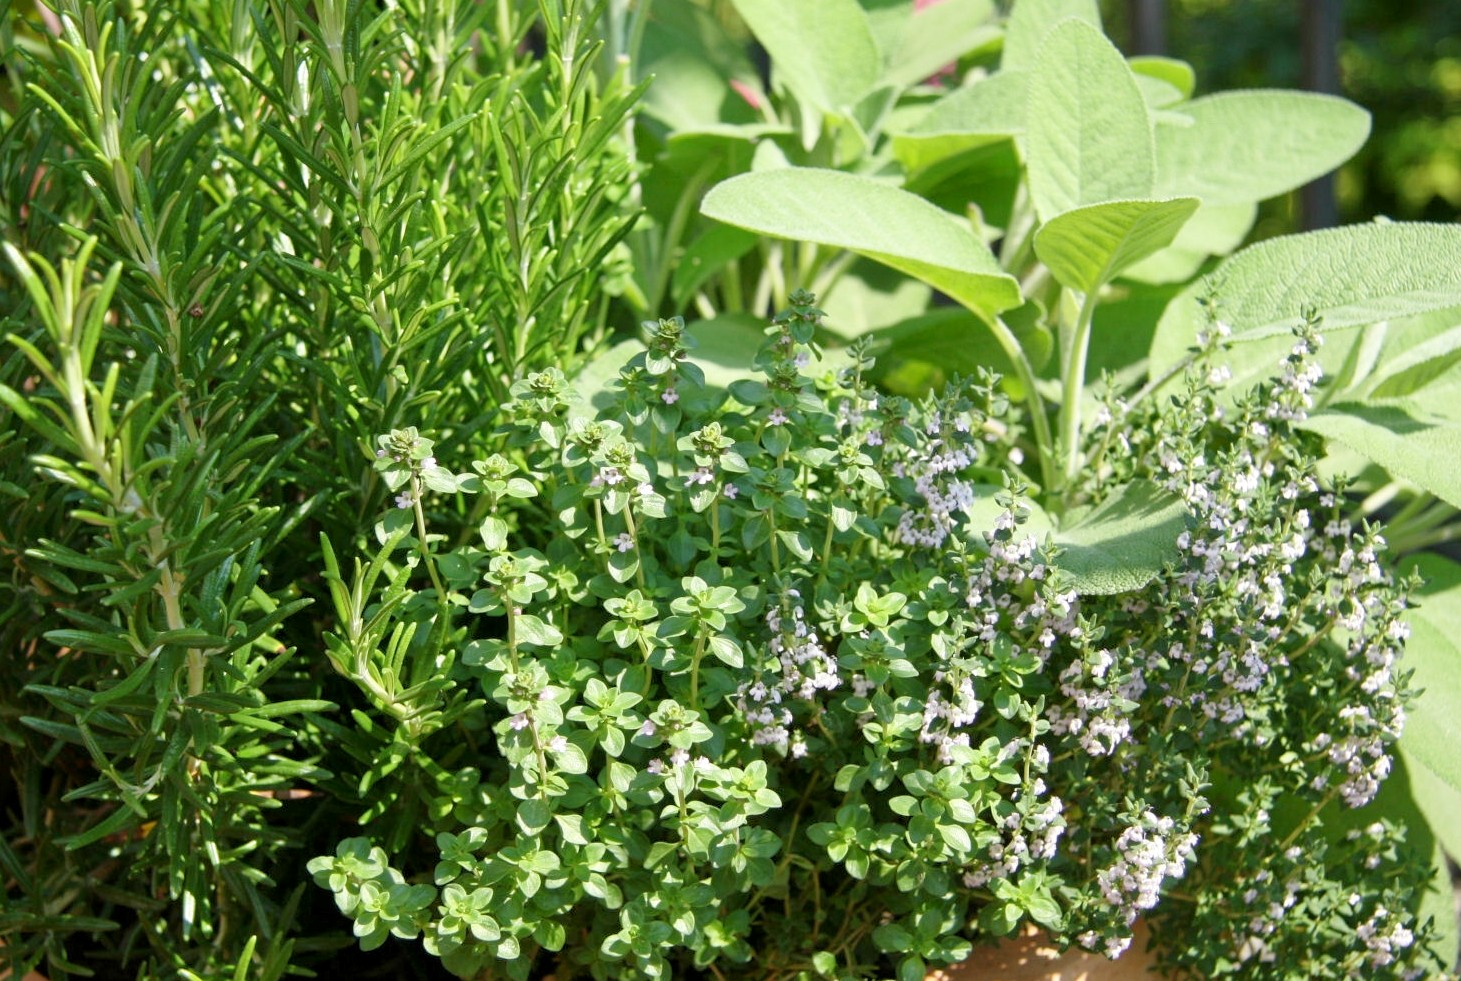 Tour beautiful herb gardens like this one at The 1785 Inn.